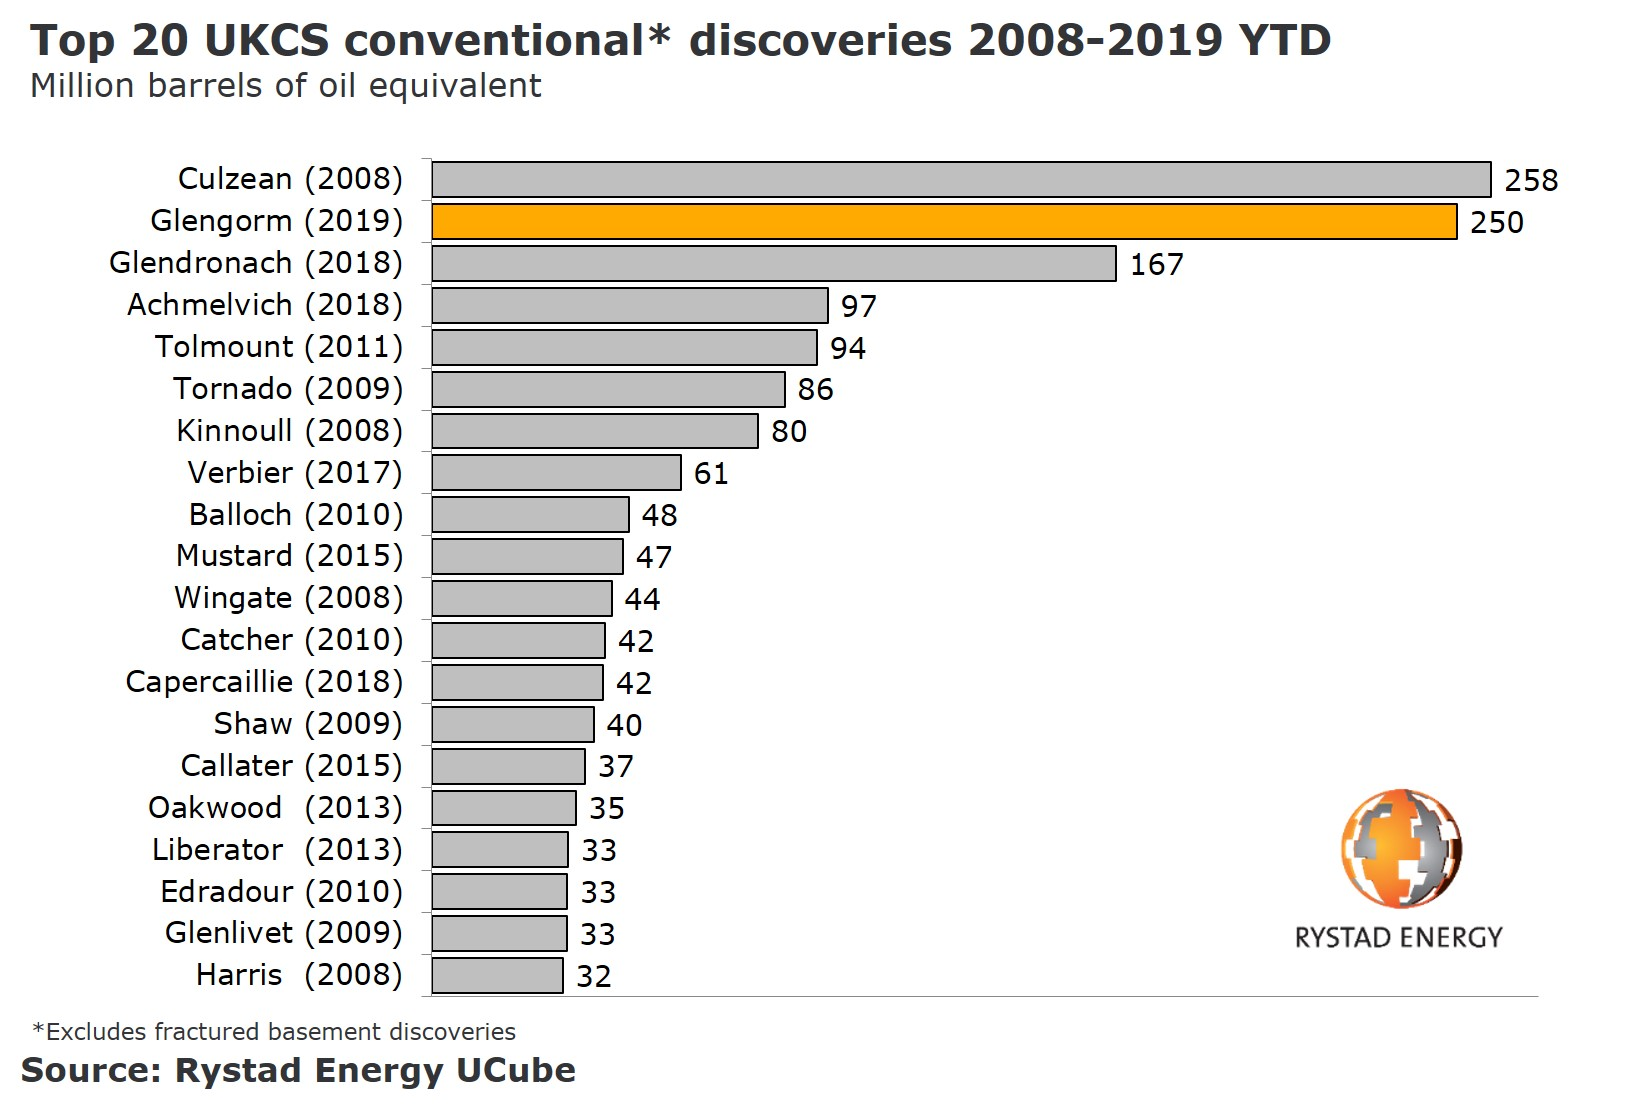 A chart showing the top 20 UKCS conventional discoveries 2008-2019 YTD. Source: Rystad Energy UCube